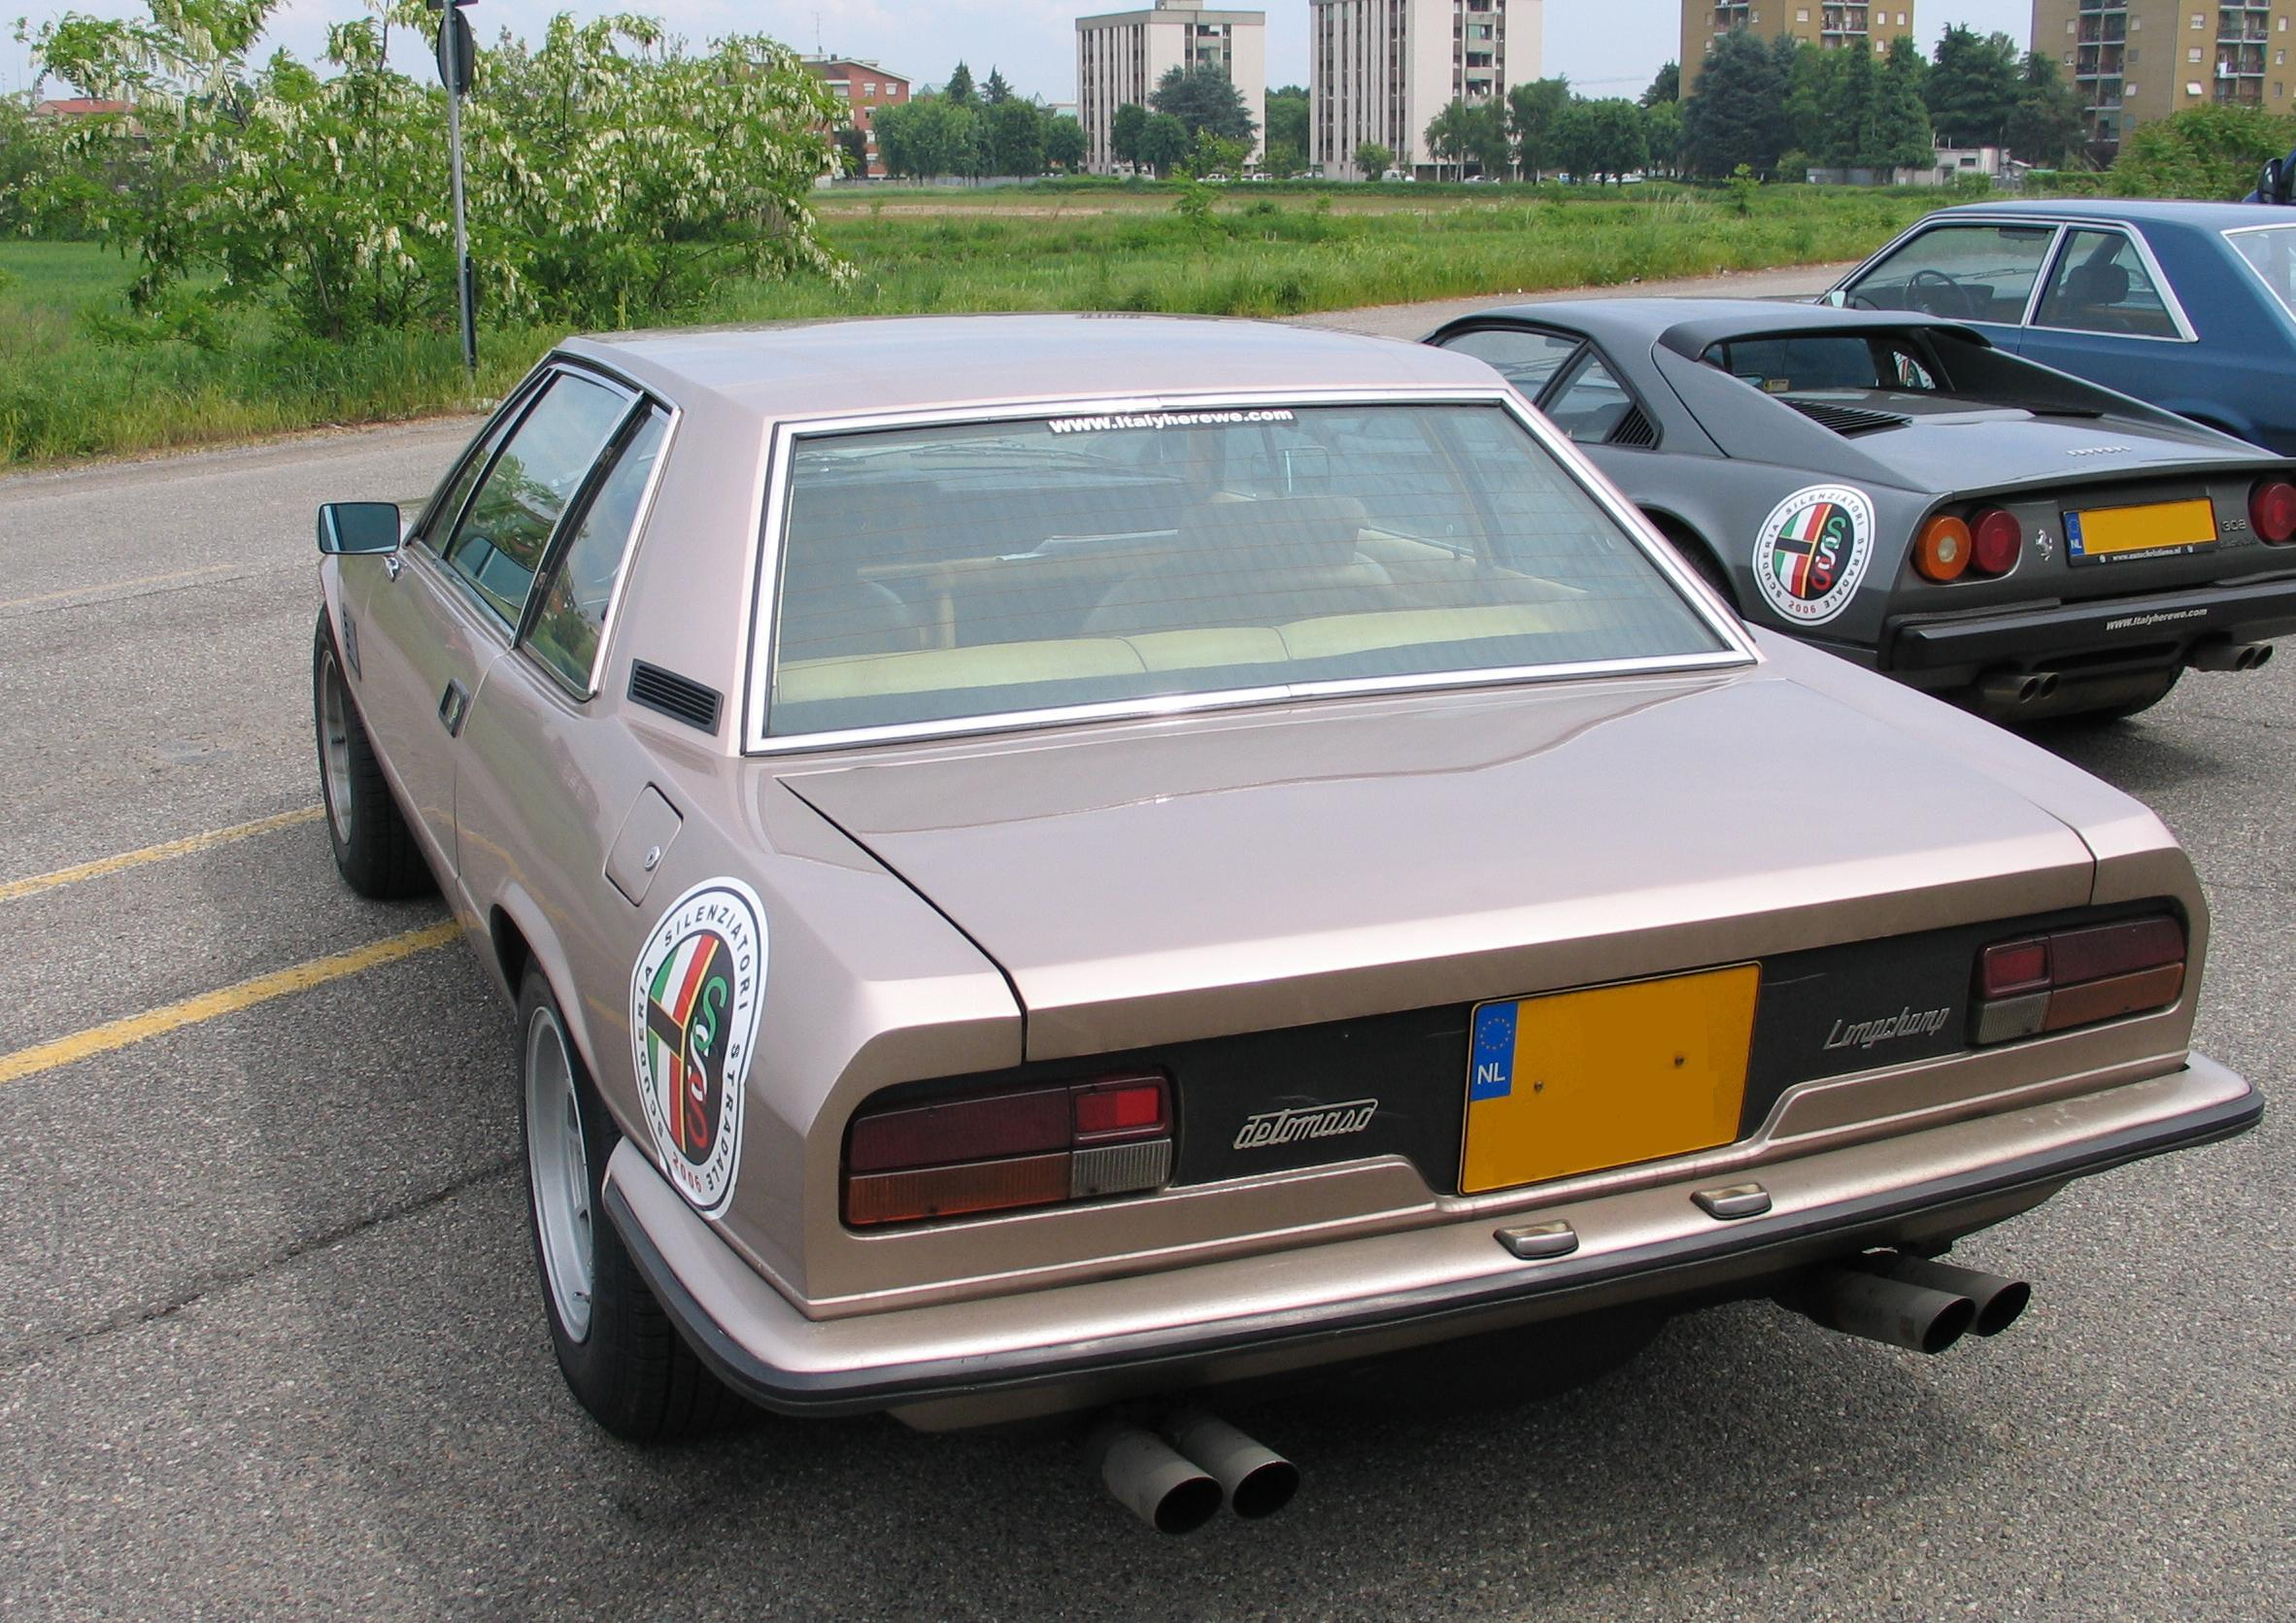 http://upload.wikimedia.org/wikipedia/commons/8/8a/DeTomaso_Longchamp_rear.jpg